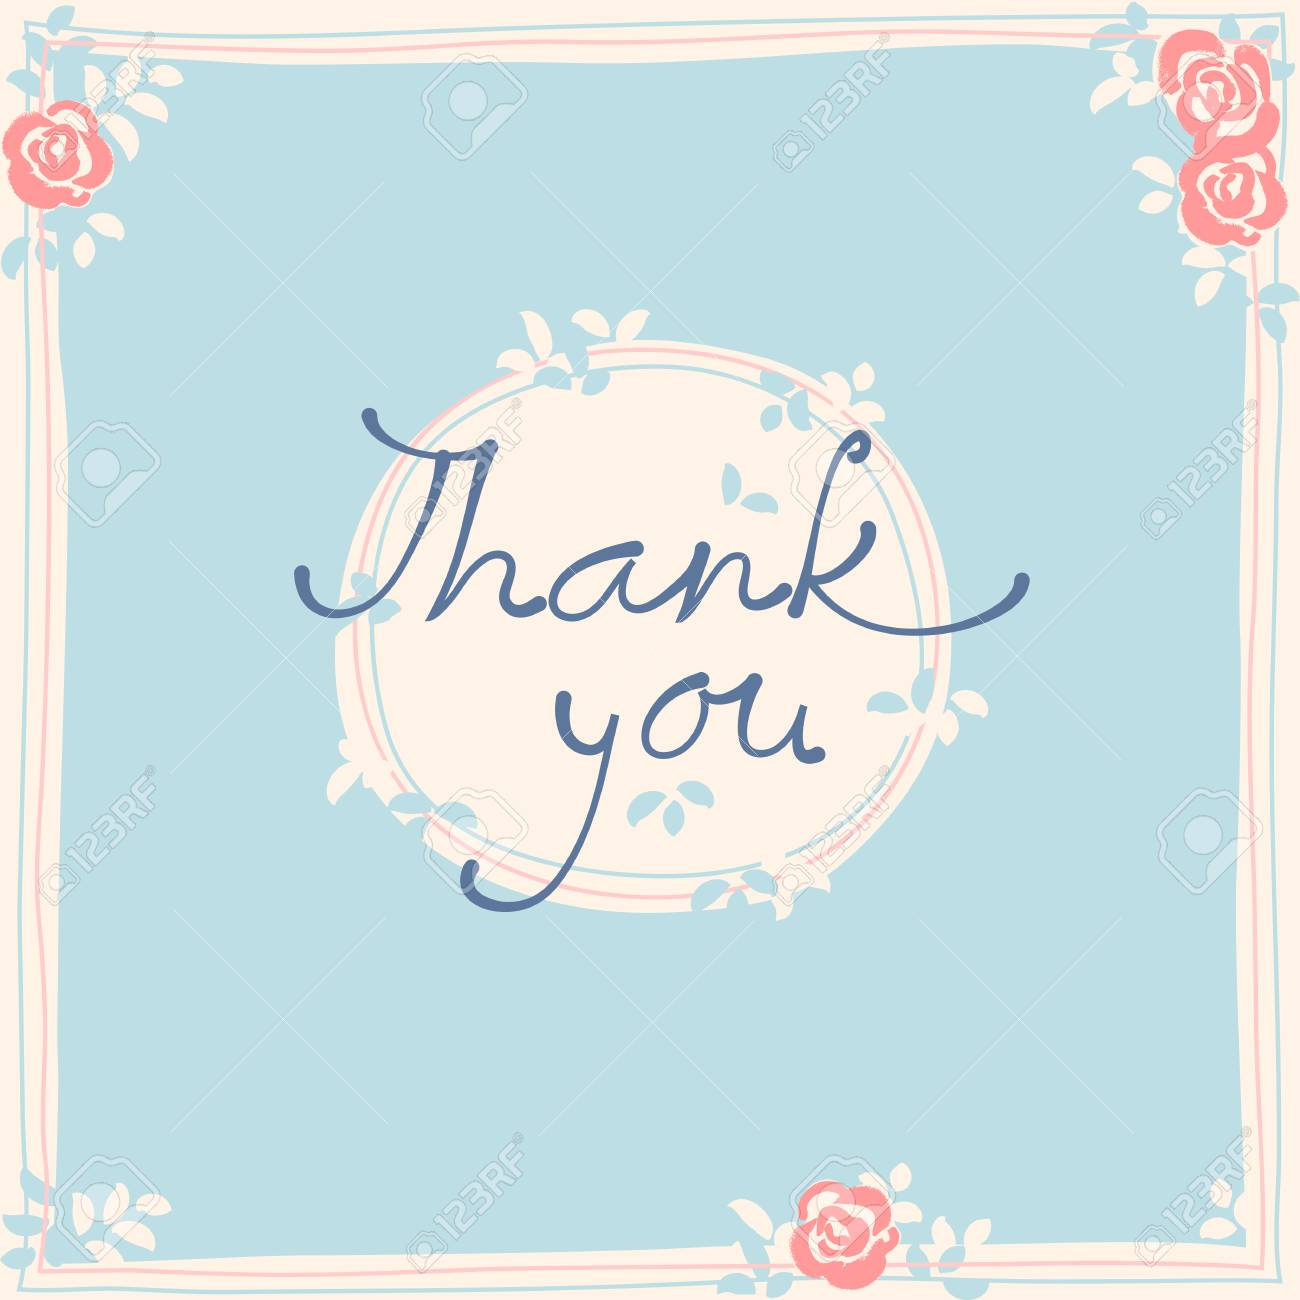 thank you card design template simple greeting card elegant